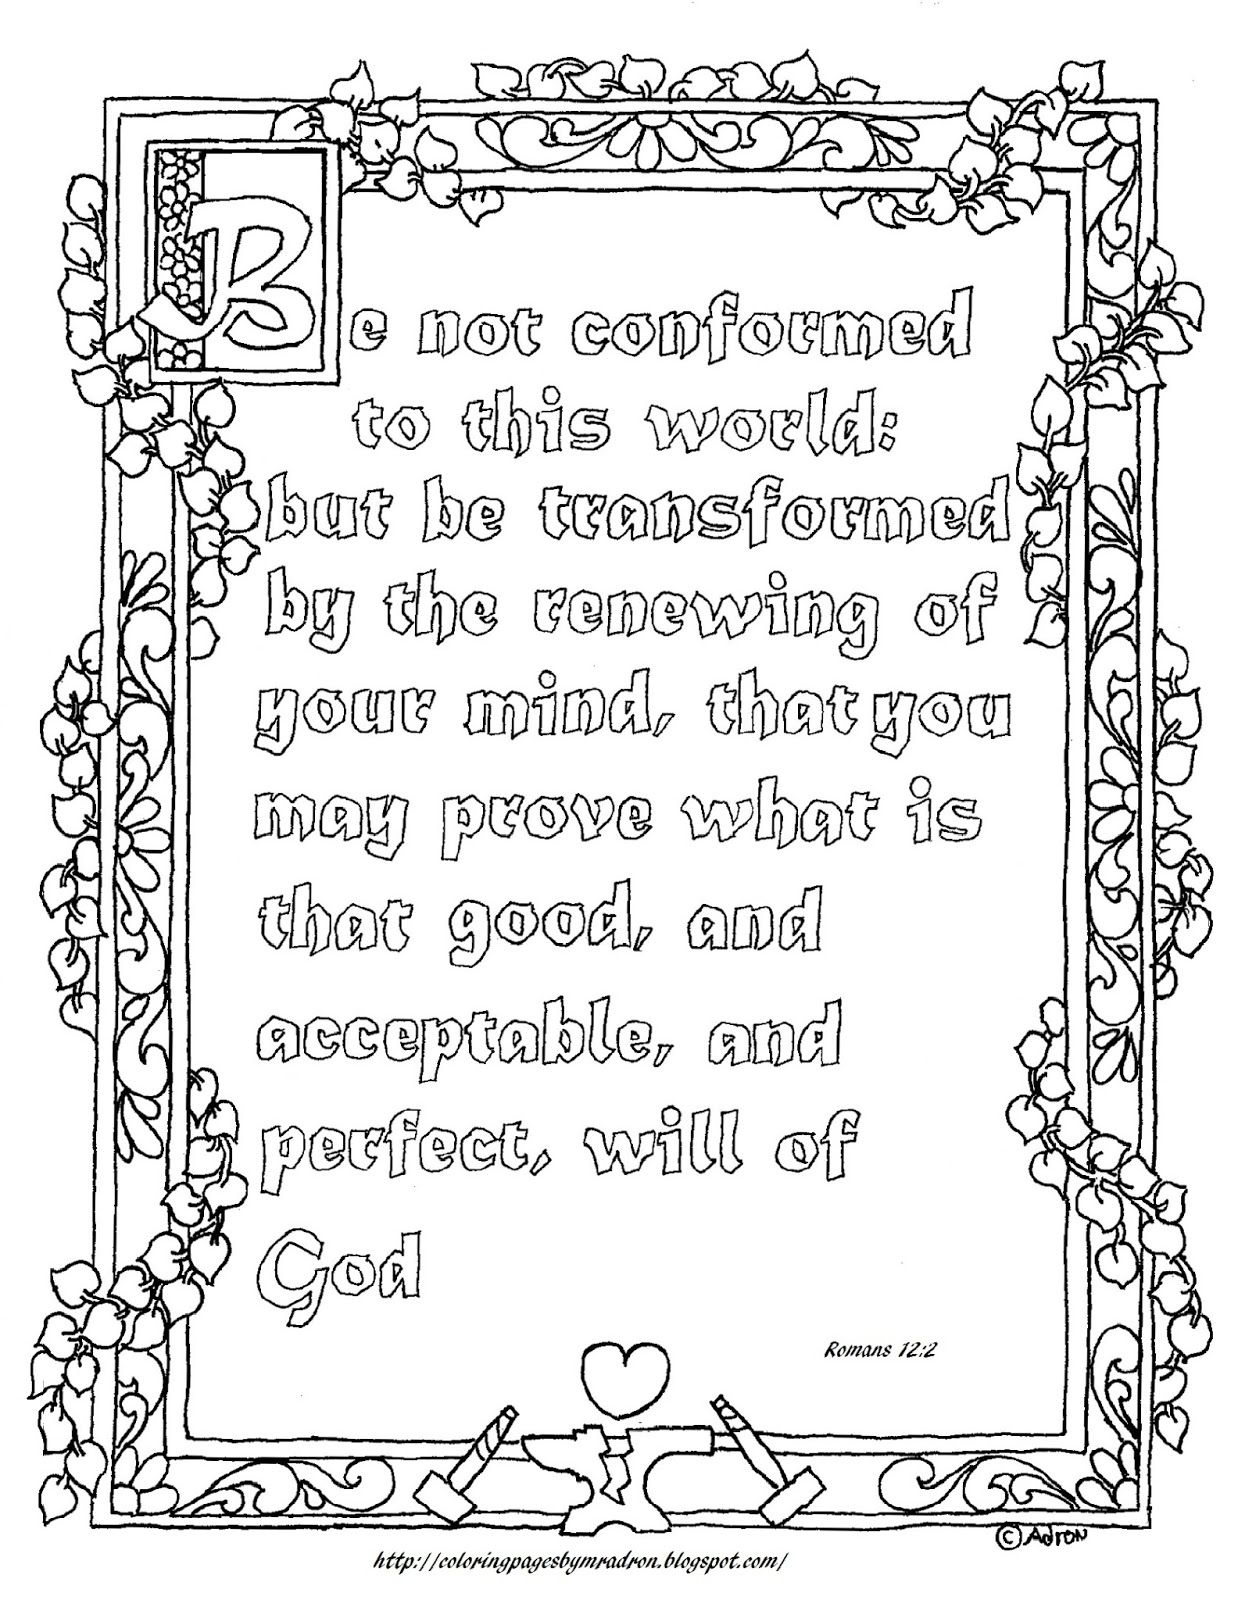 Printable coloring pages may - Coloring Pages For Kids By Mr Adron Free Printable Romans 12 2 Coloring